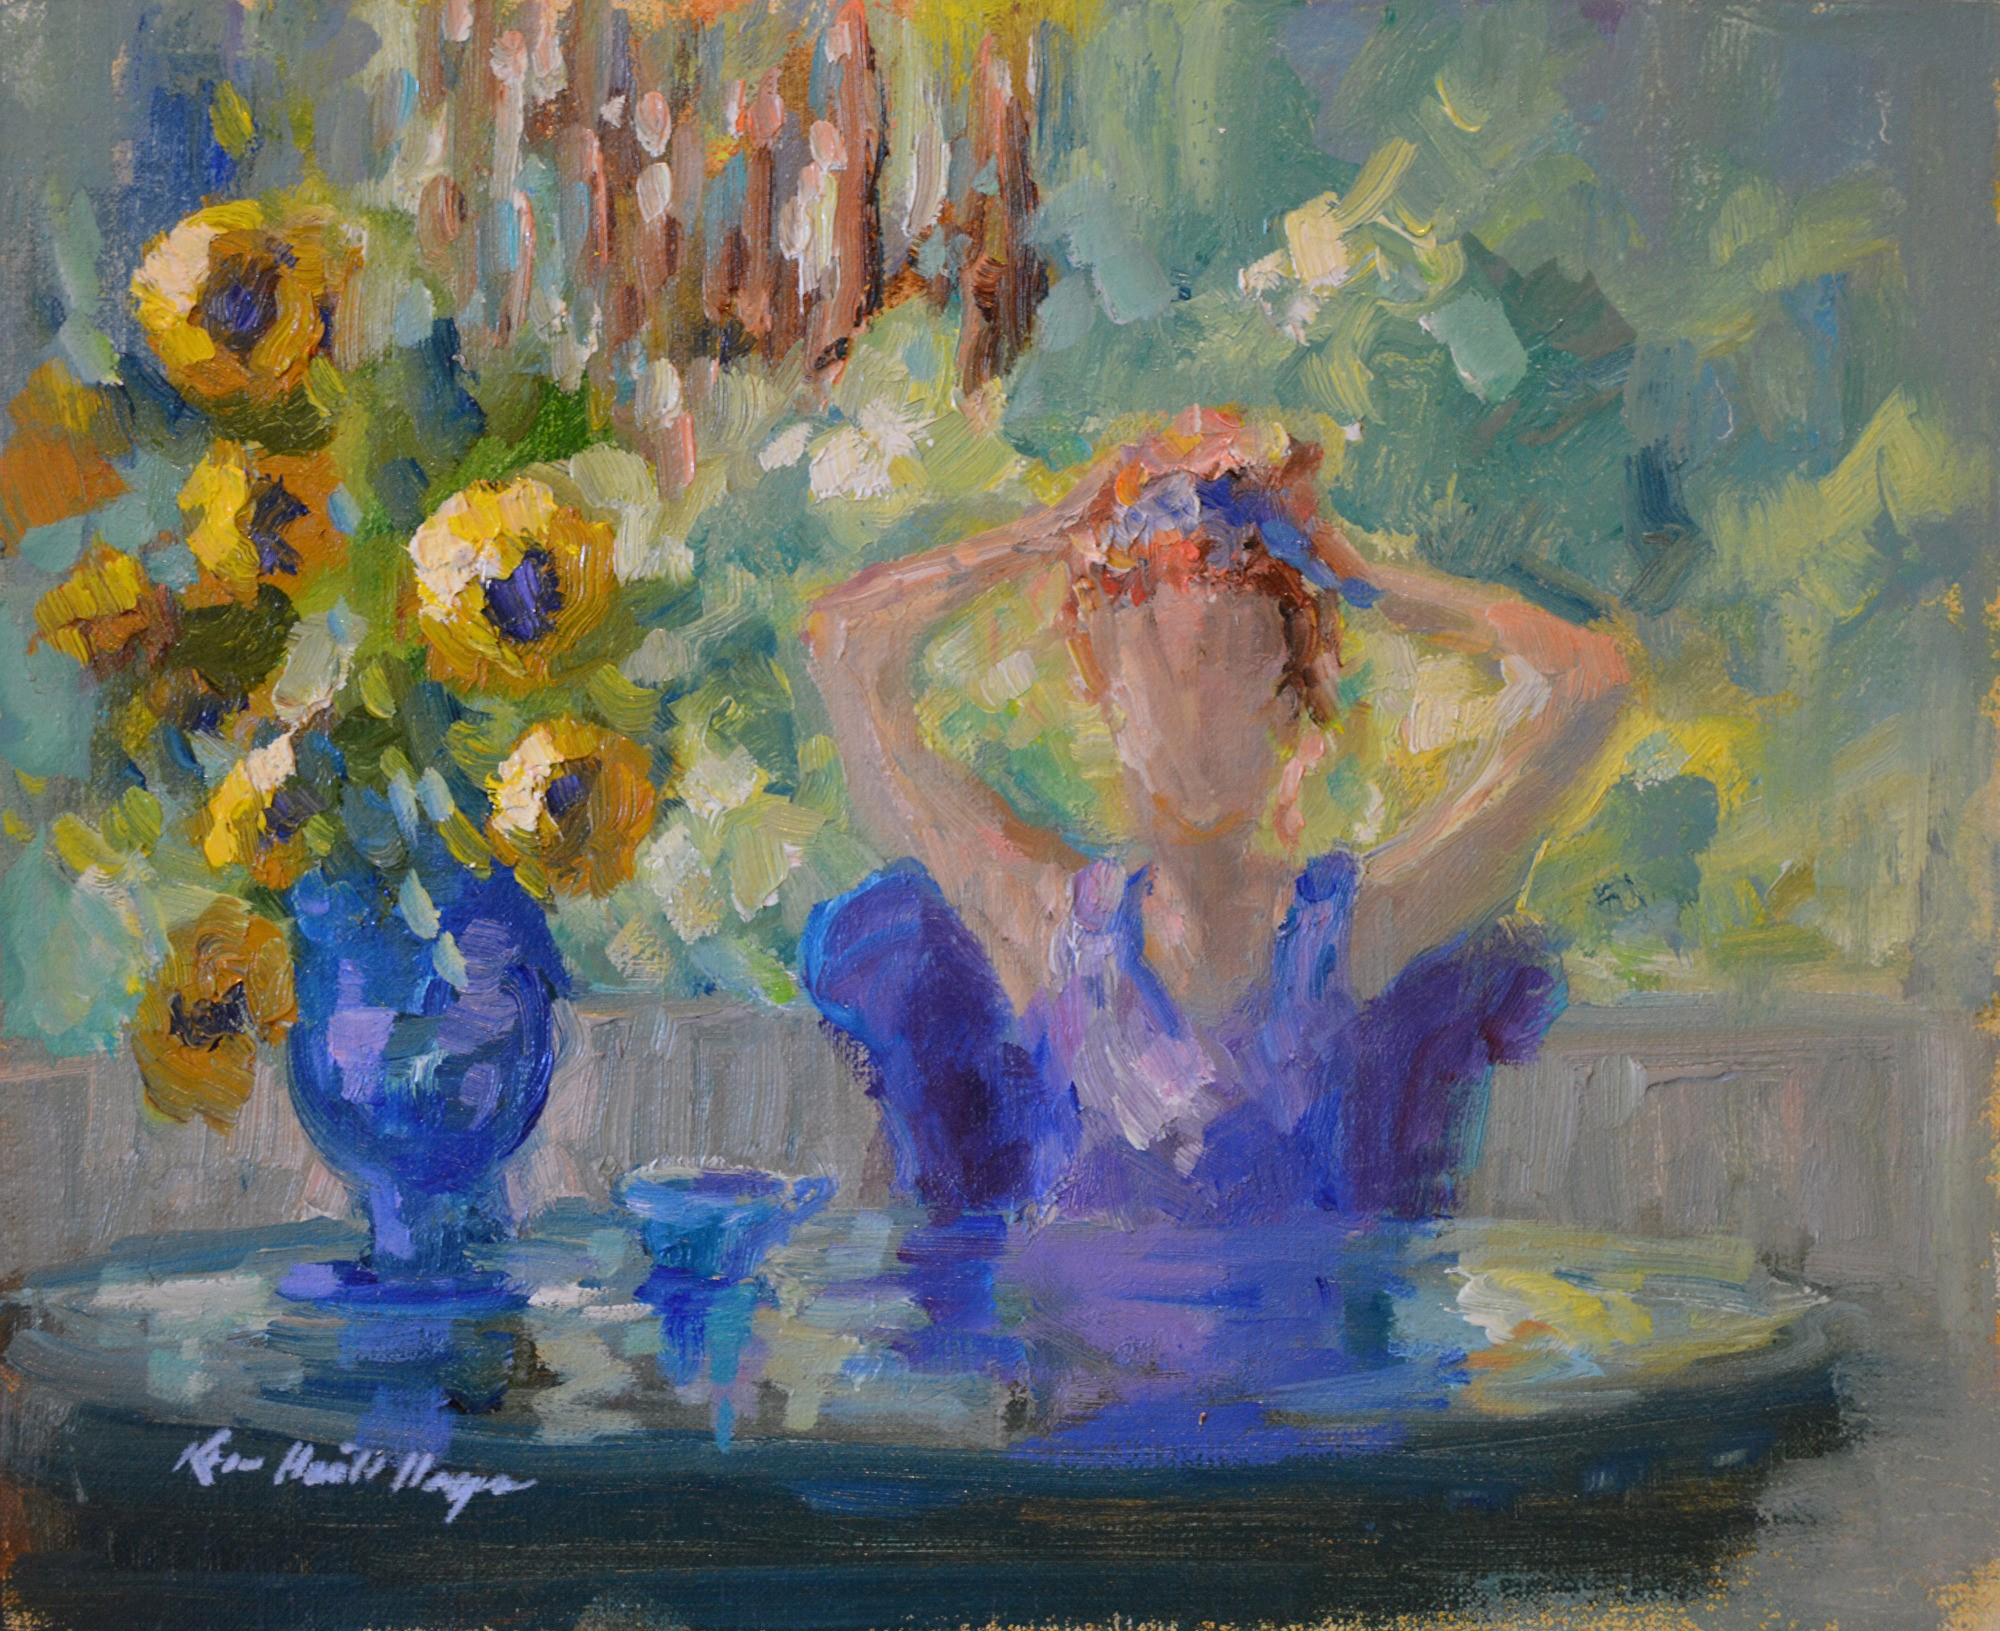 Morning Sunlight at My Table by Karen Hewitt Hagan